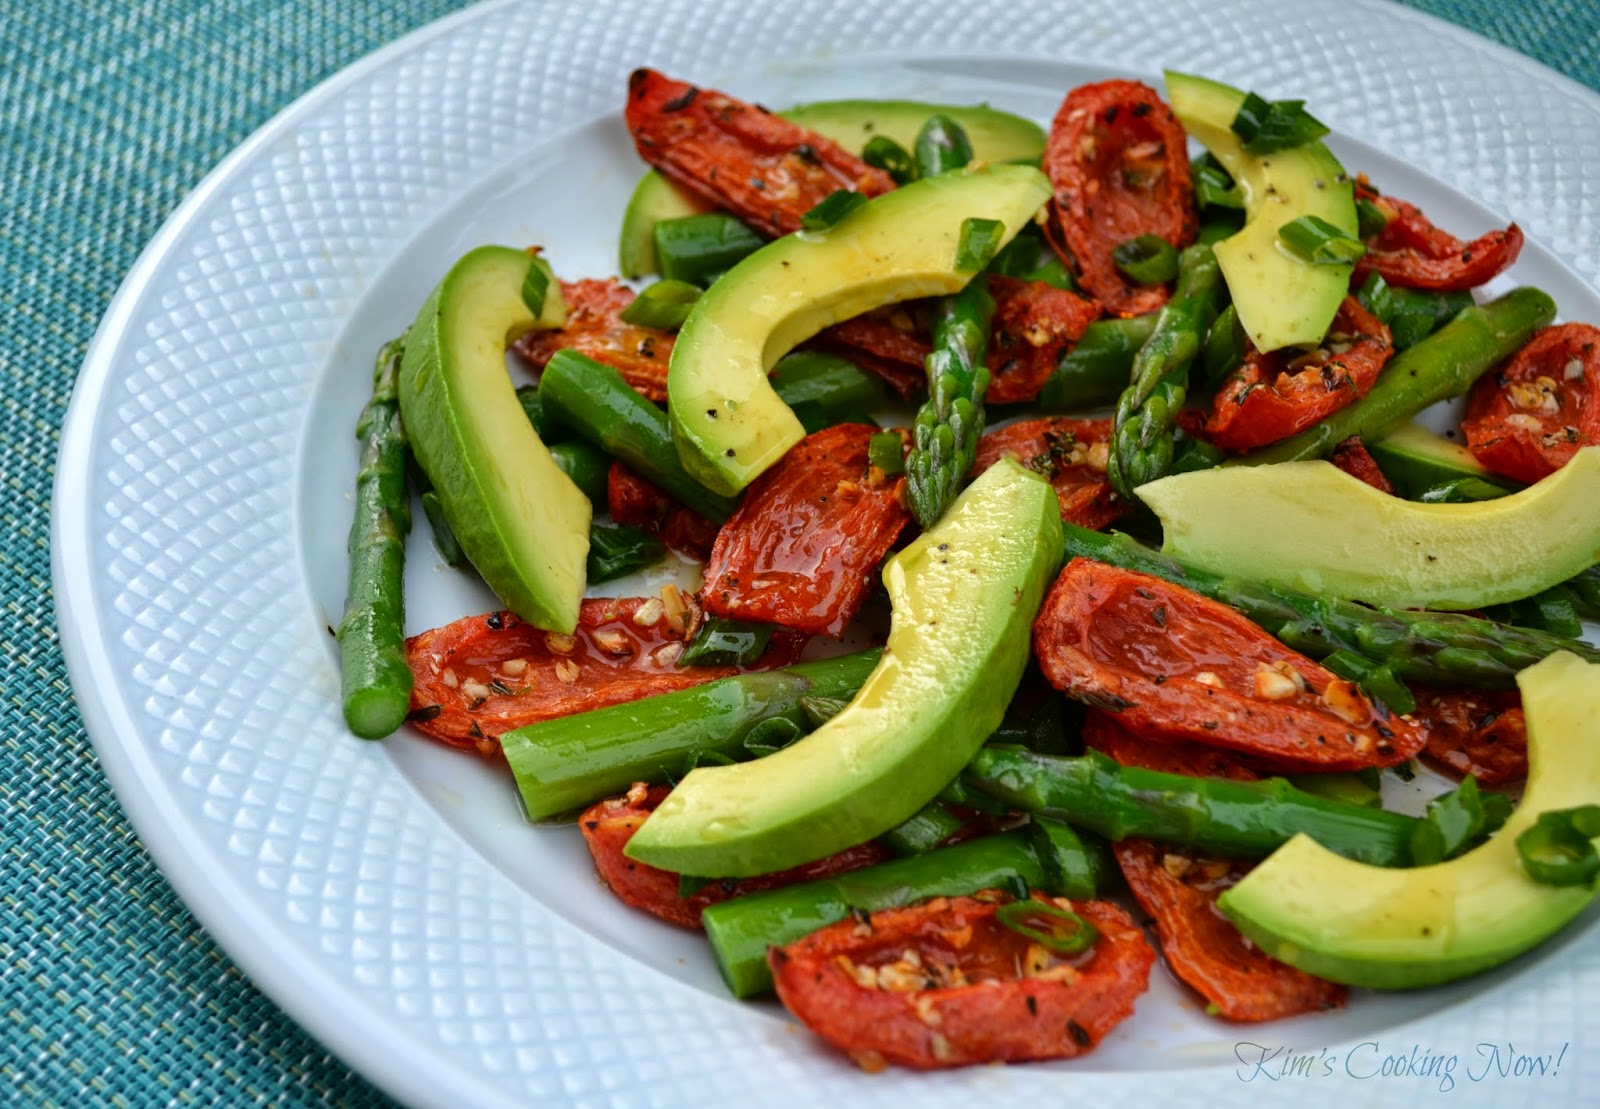 Kim's Cooking Now!: Asparagus, Avocado and Roasted Tomato Salad